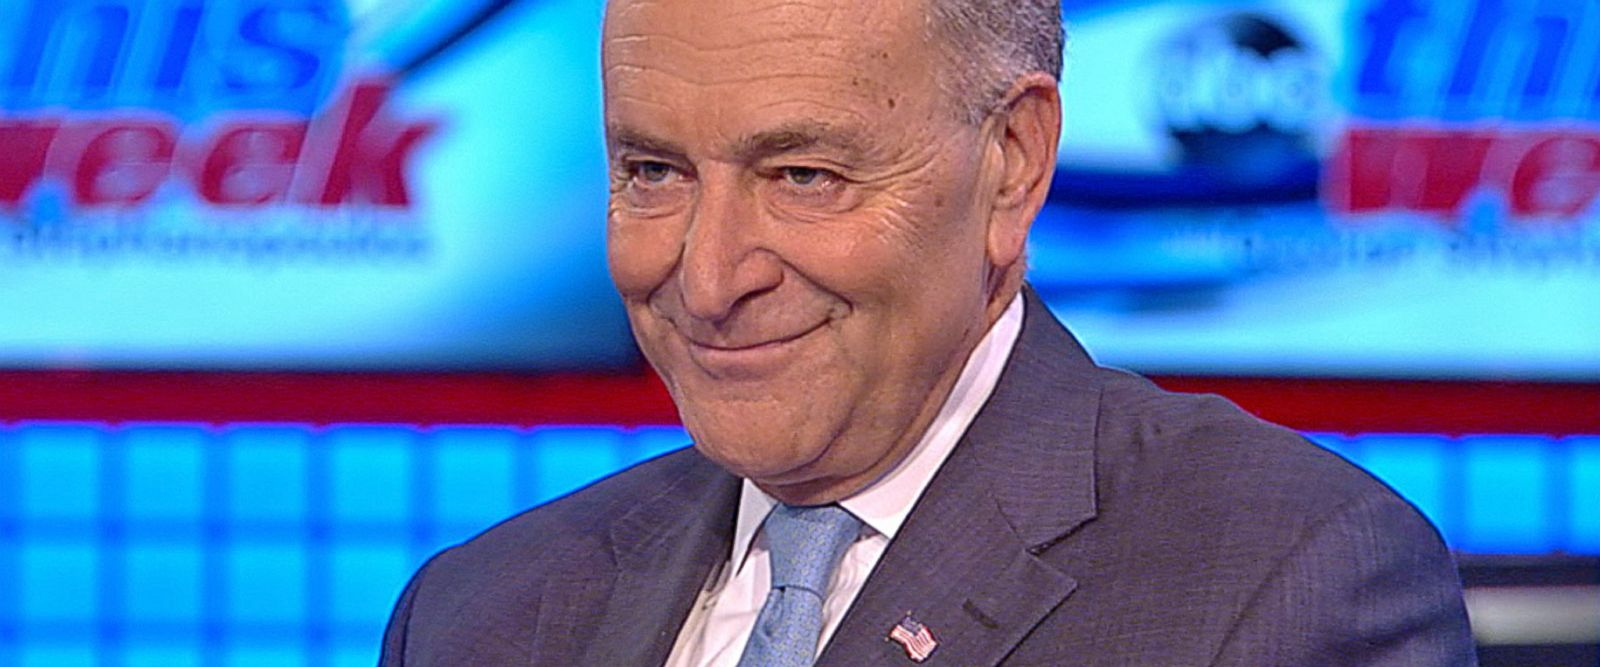 VIDEO: One-on-One with Senate Minority Leader Chuck Schumer